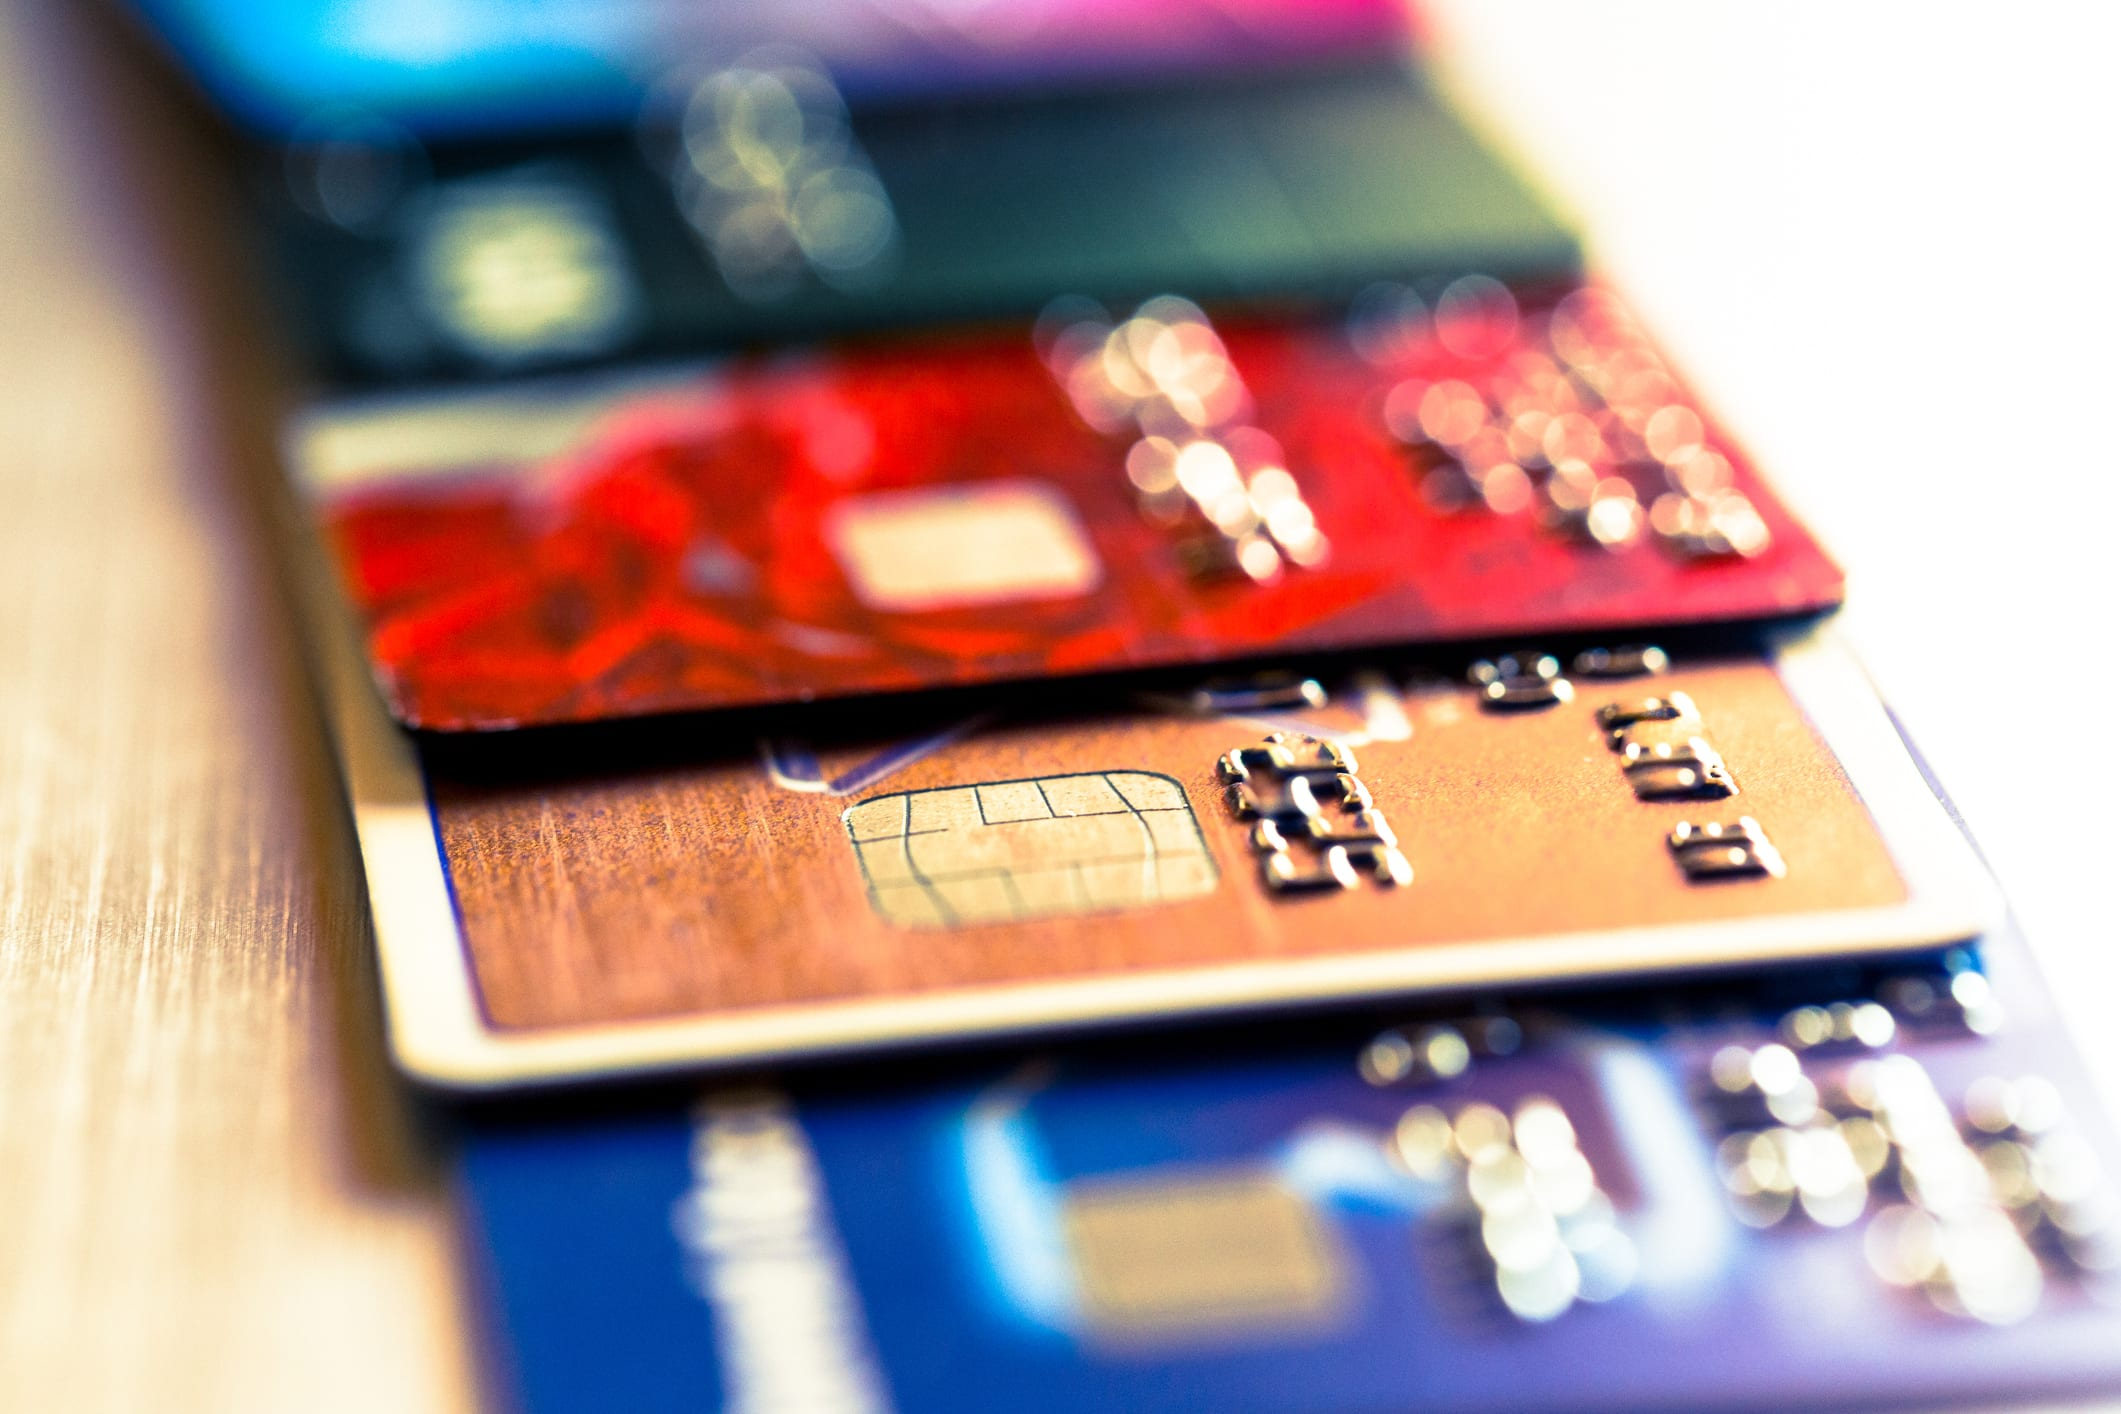 Credit card industry reins in balance-transfer offers as banks from JPMorgan to Amex fear defaults